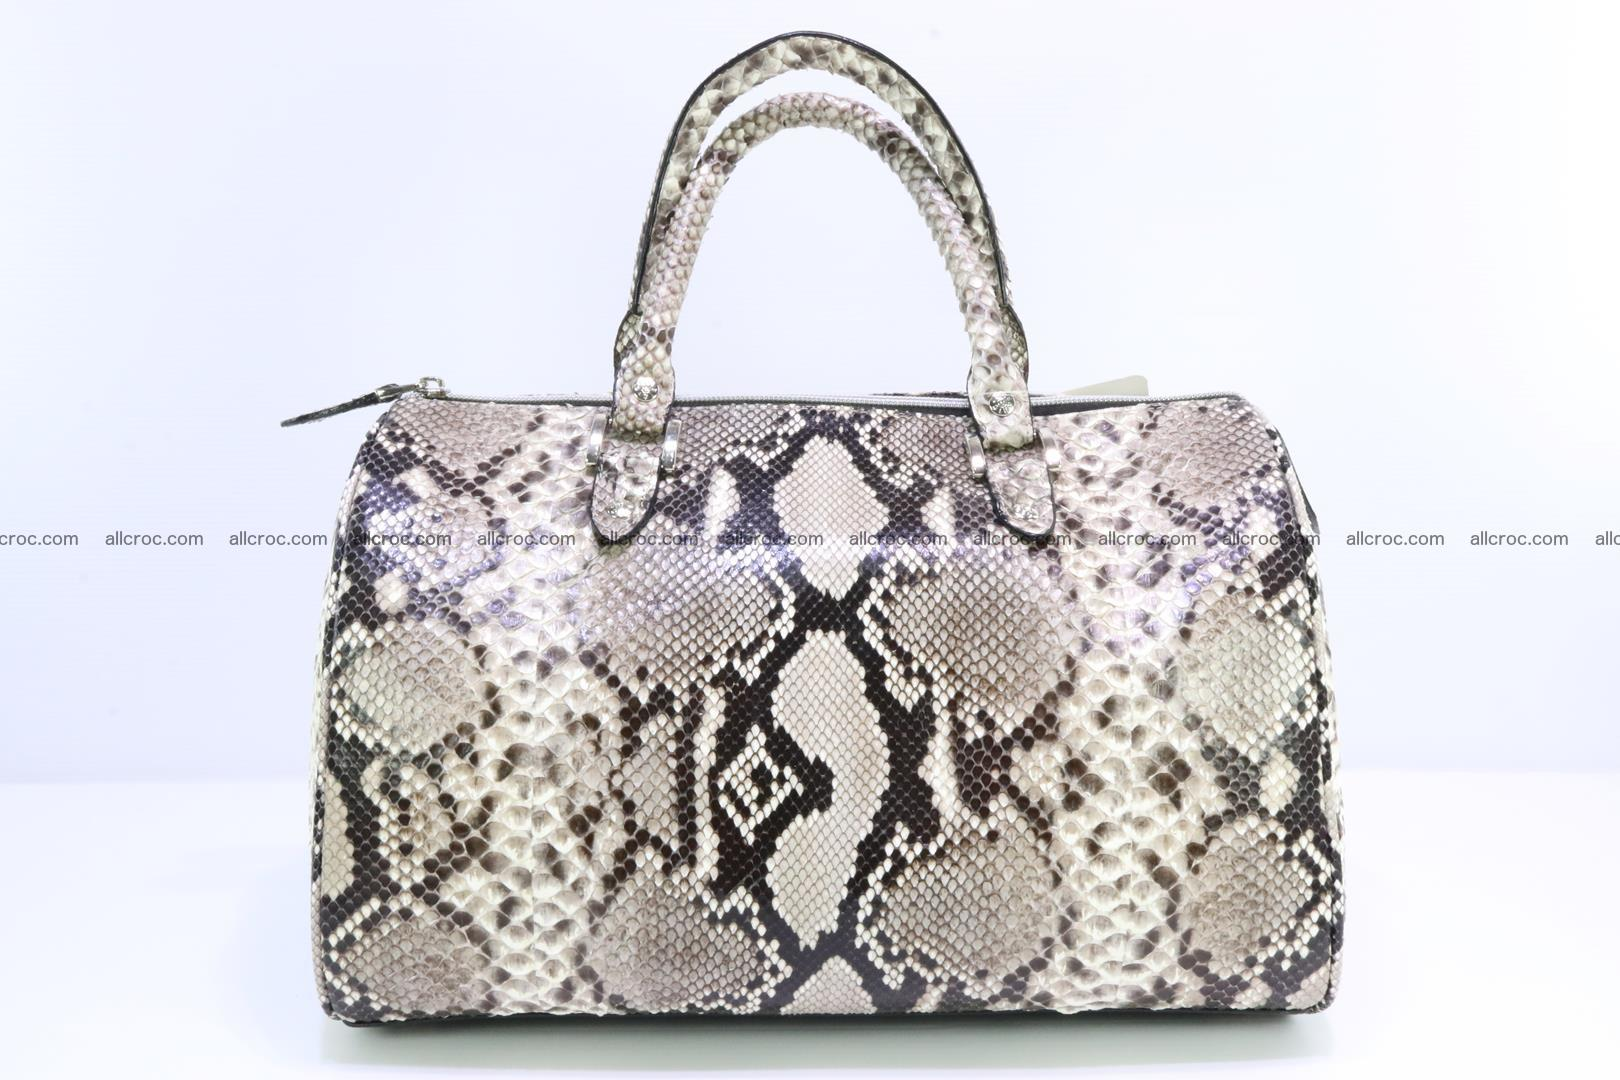 Ladies handbag, valise from genuine python skin 207 Foto 0